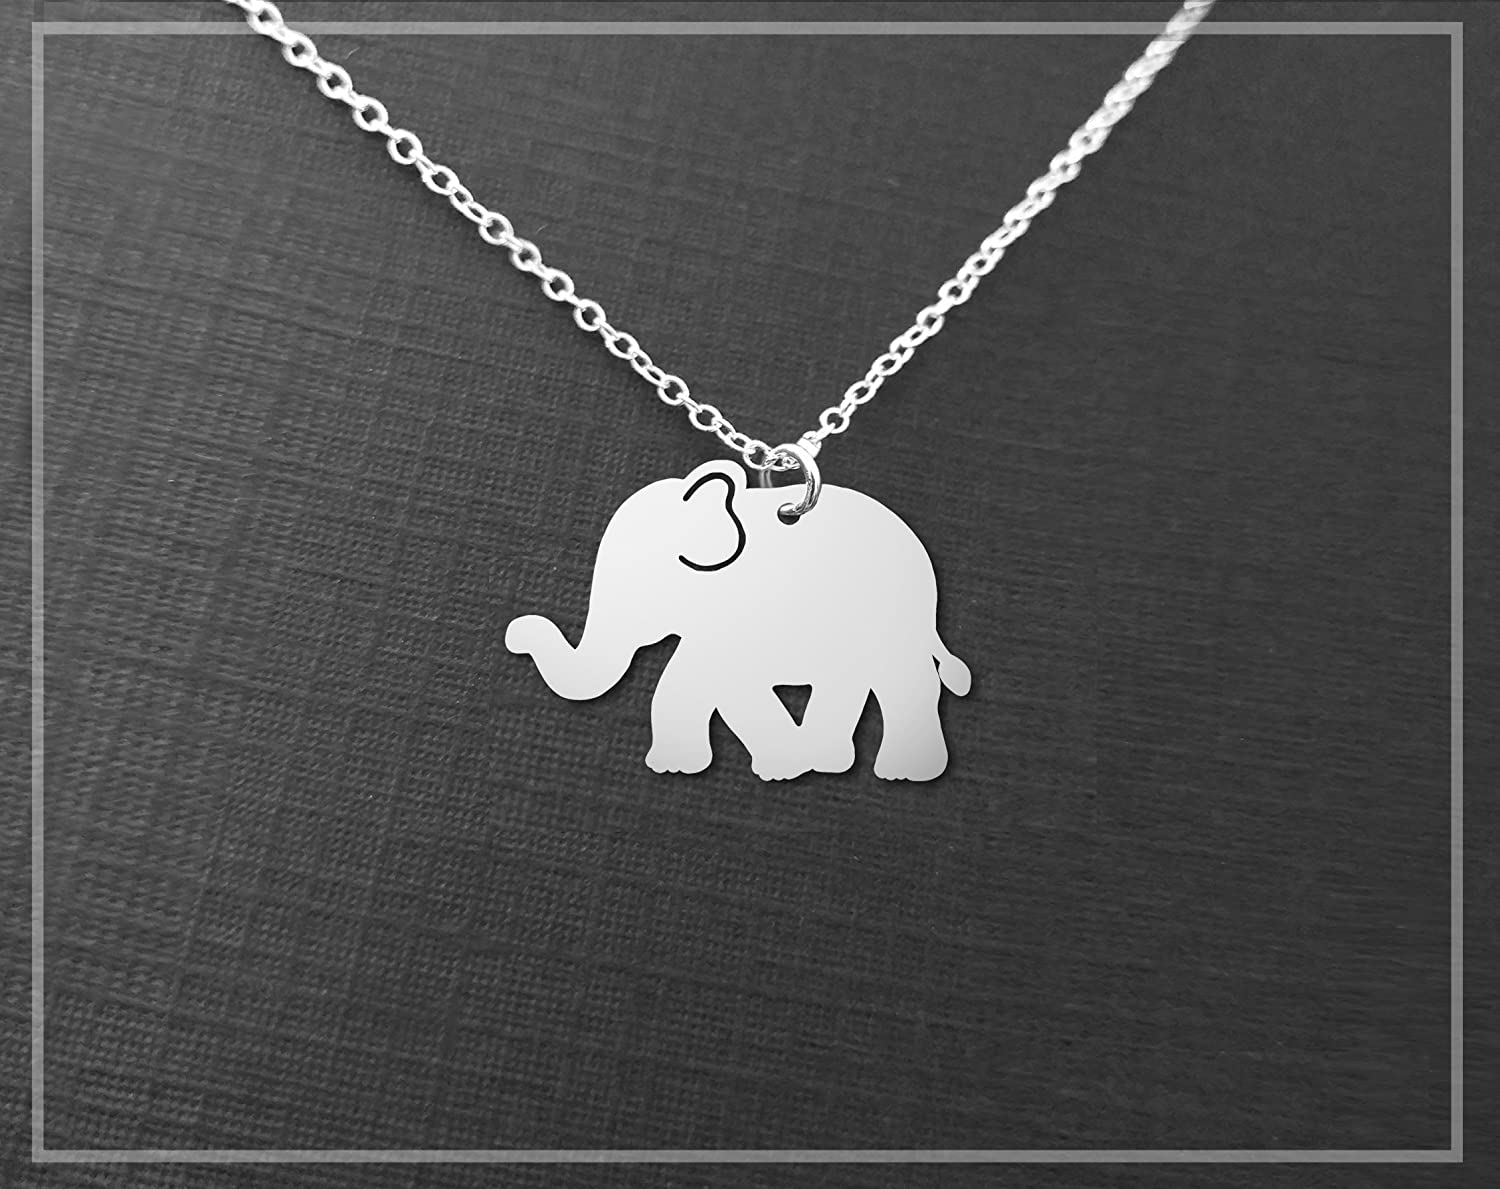 ELEPHANT NECKLACE Lucky Elephant Handmade in the USA by Gracefully Made Jewelry Animal Necklace Charm PURE Sterling Silver Necklace